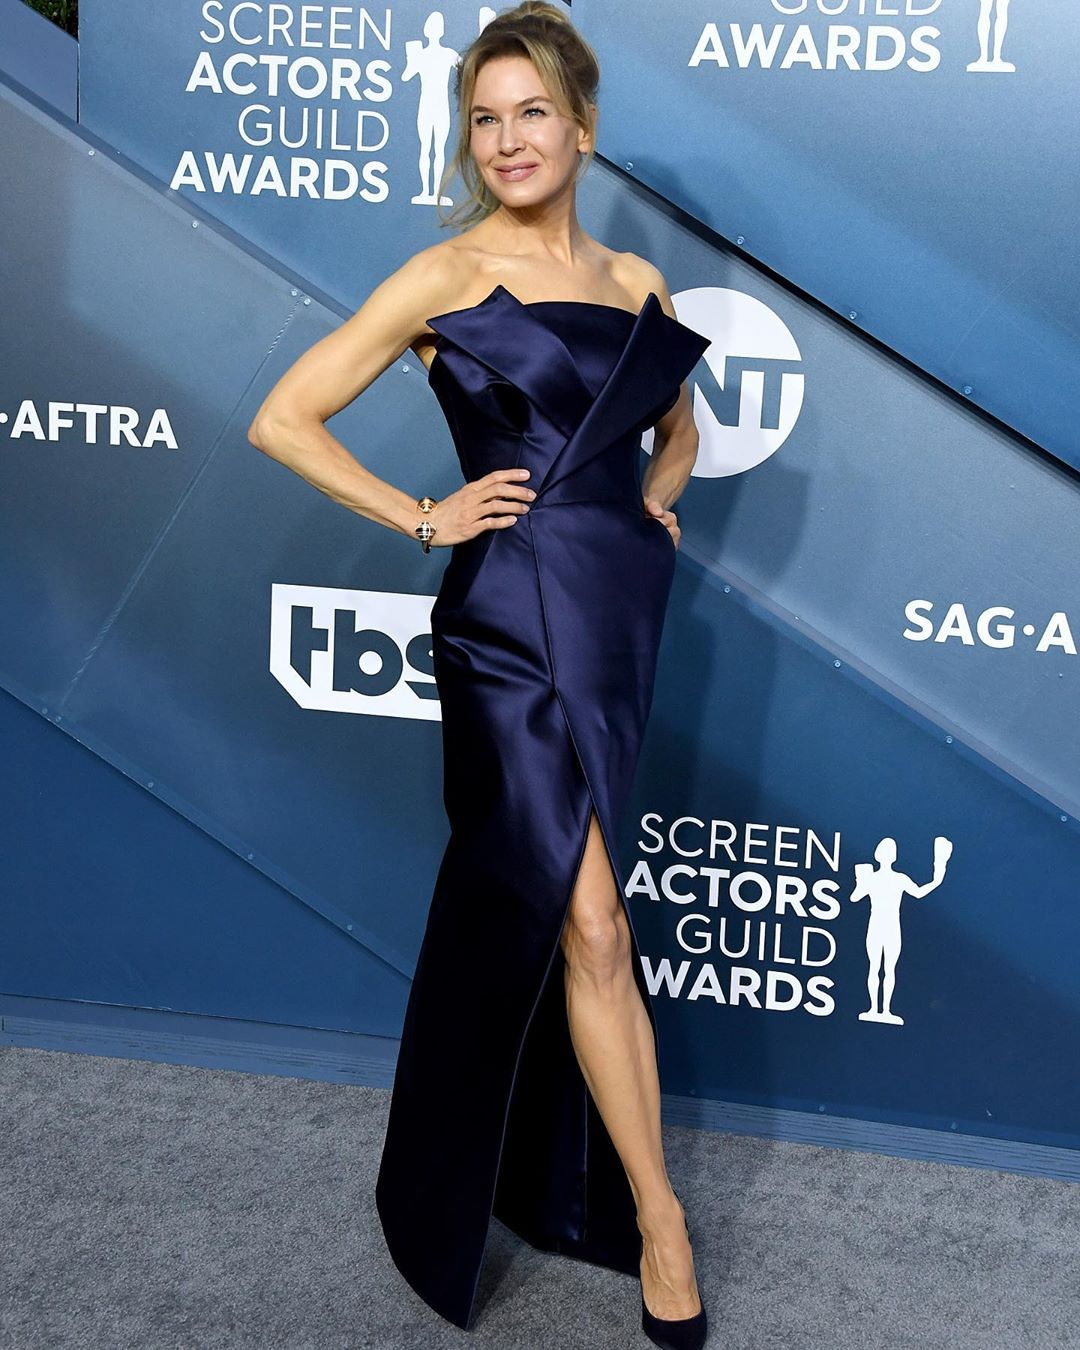 Renee Zellweger at the 2020 SAG Awards